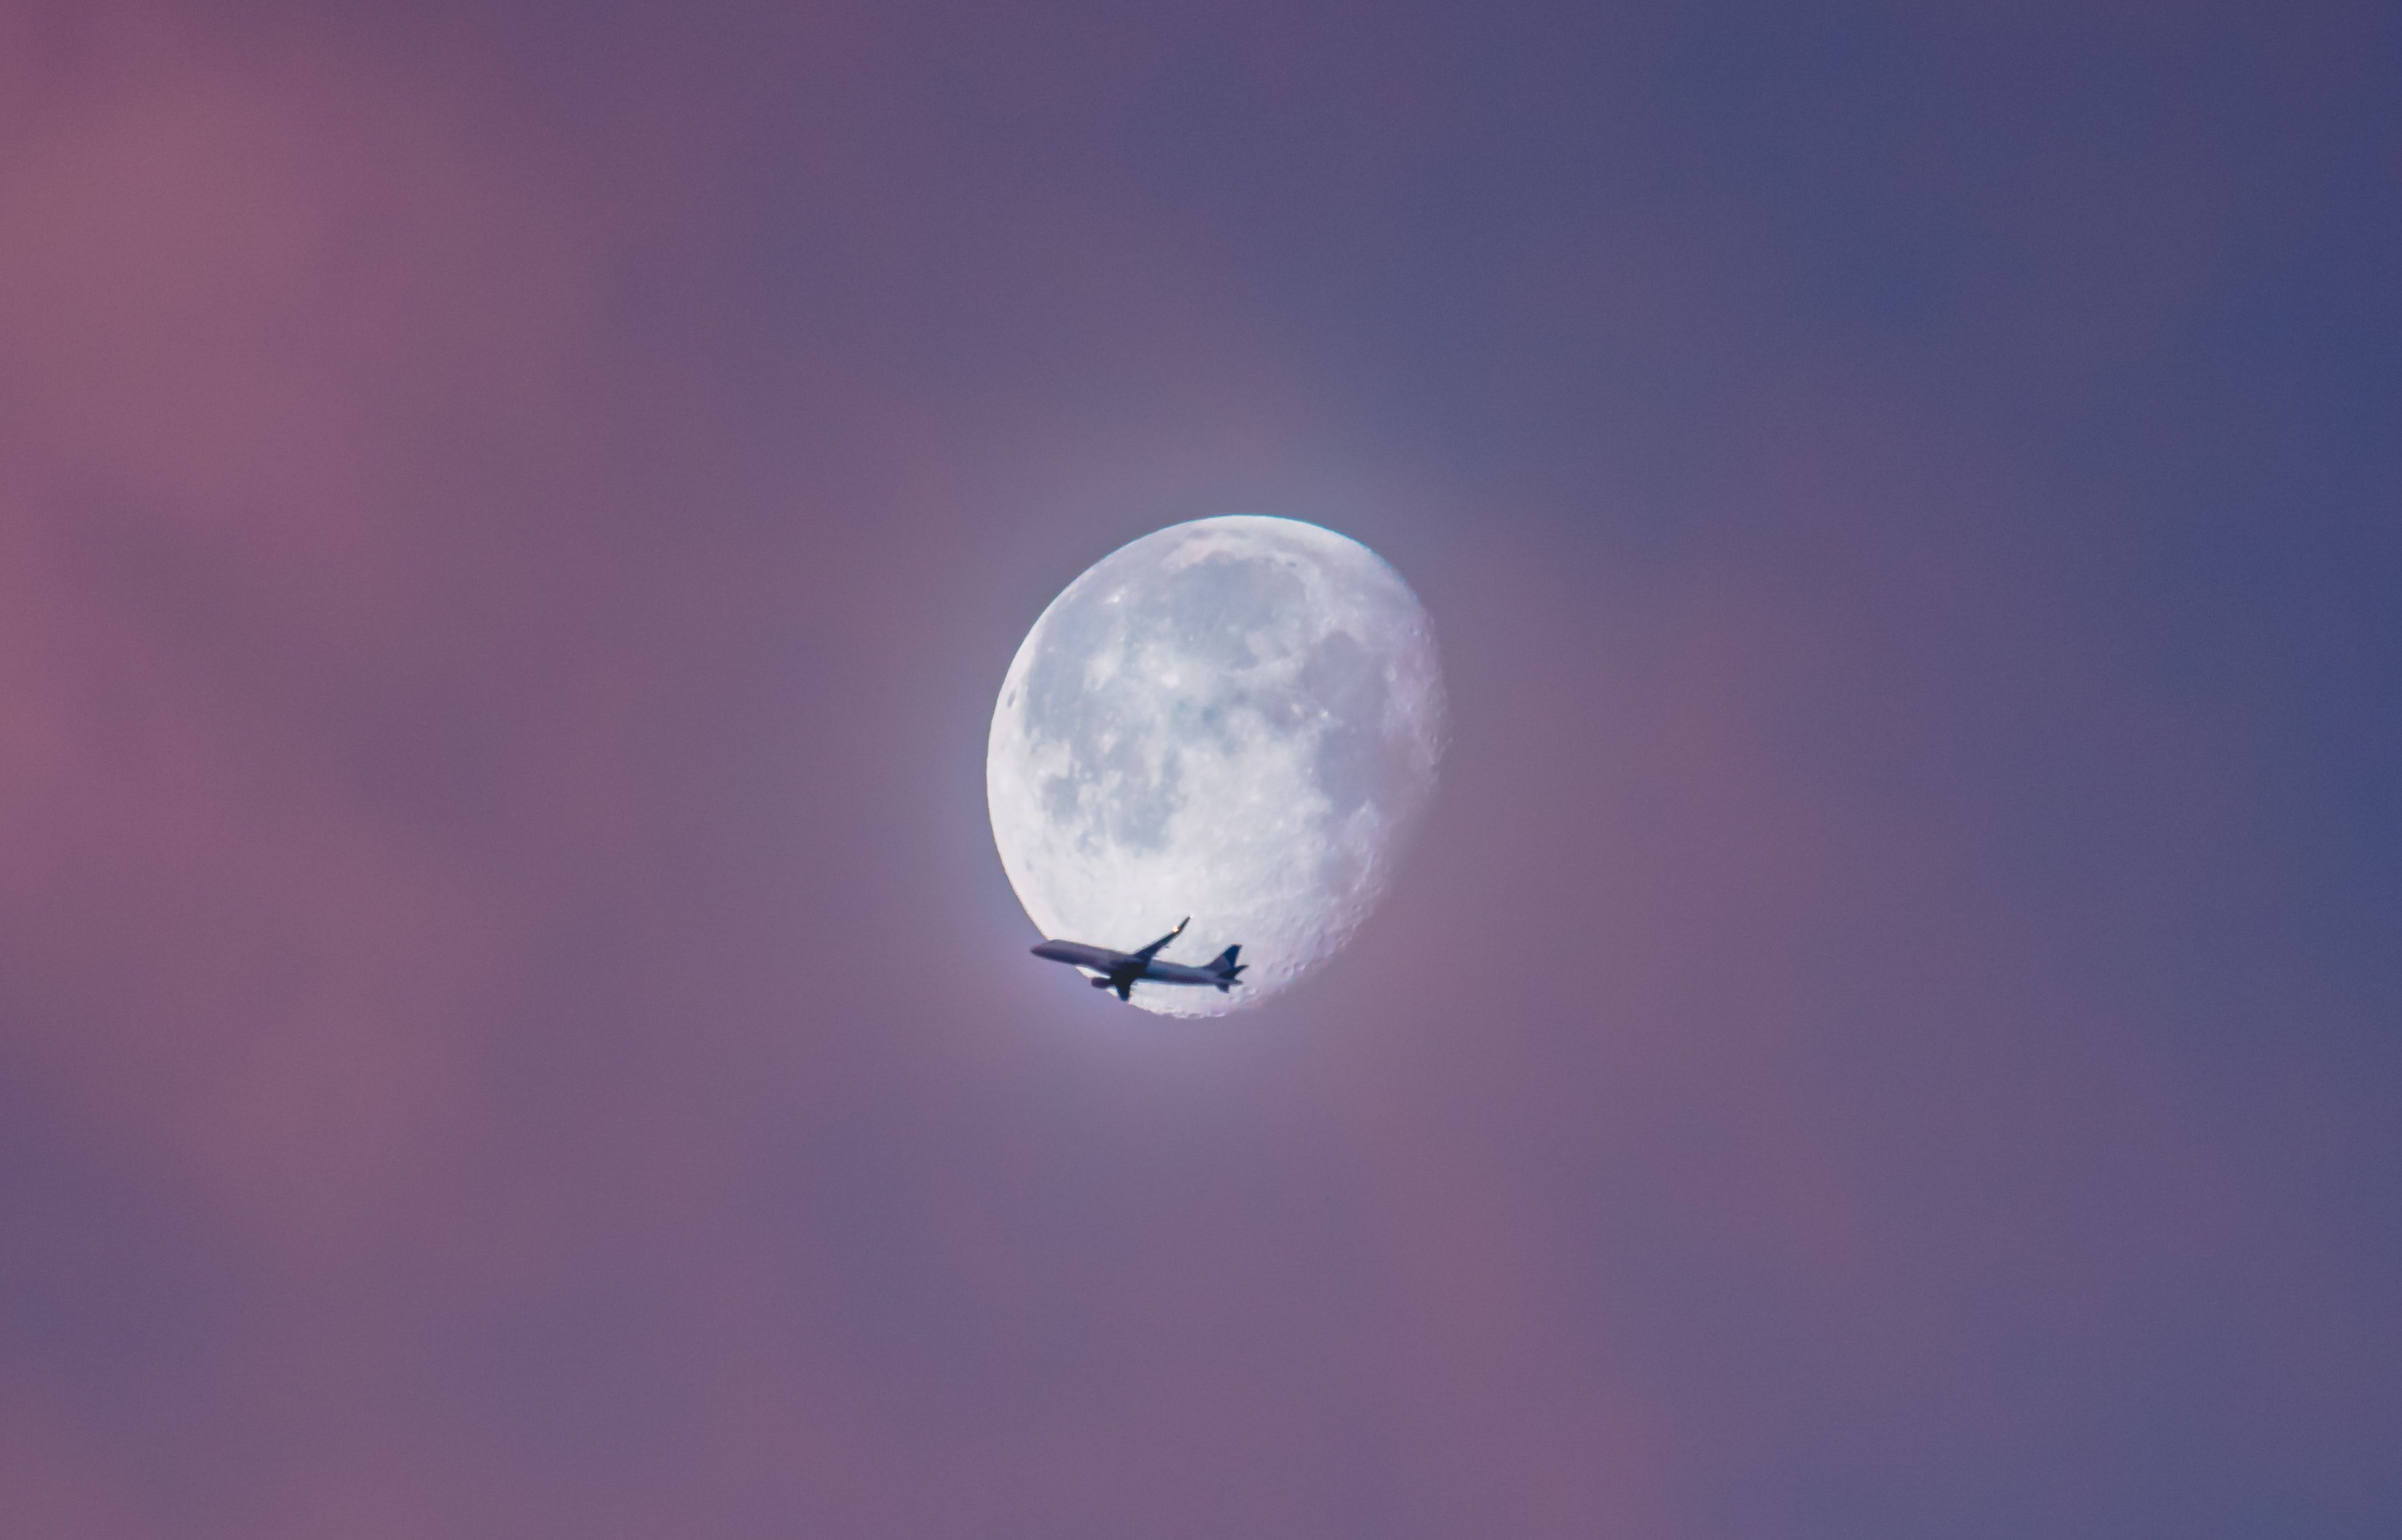 A plane appears to be flying against the moon against a pink sky over Alamo Square